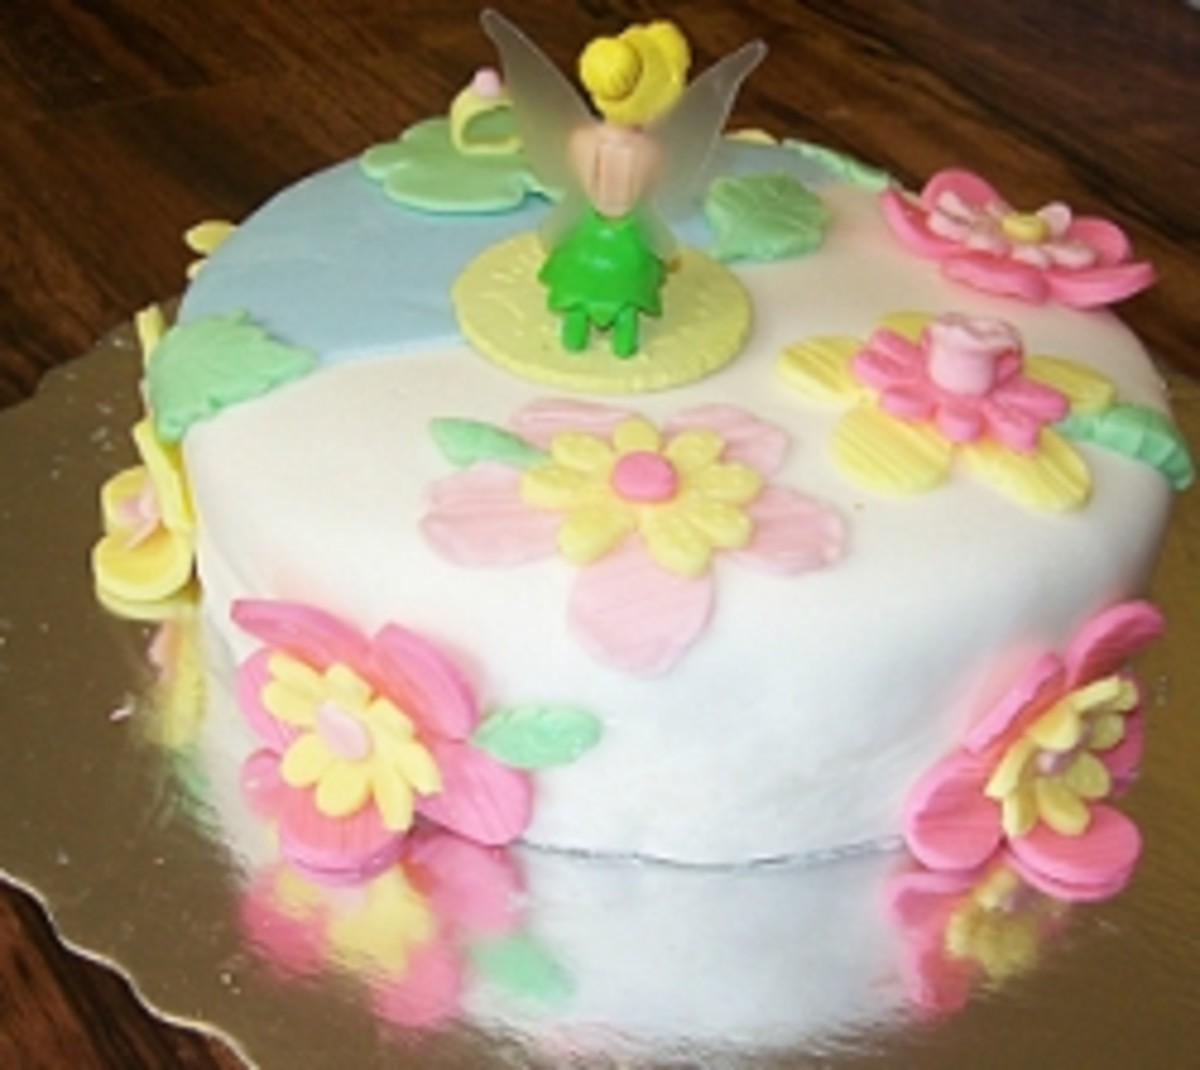 My First Fondant Cake: A Beginner's Experience